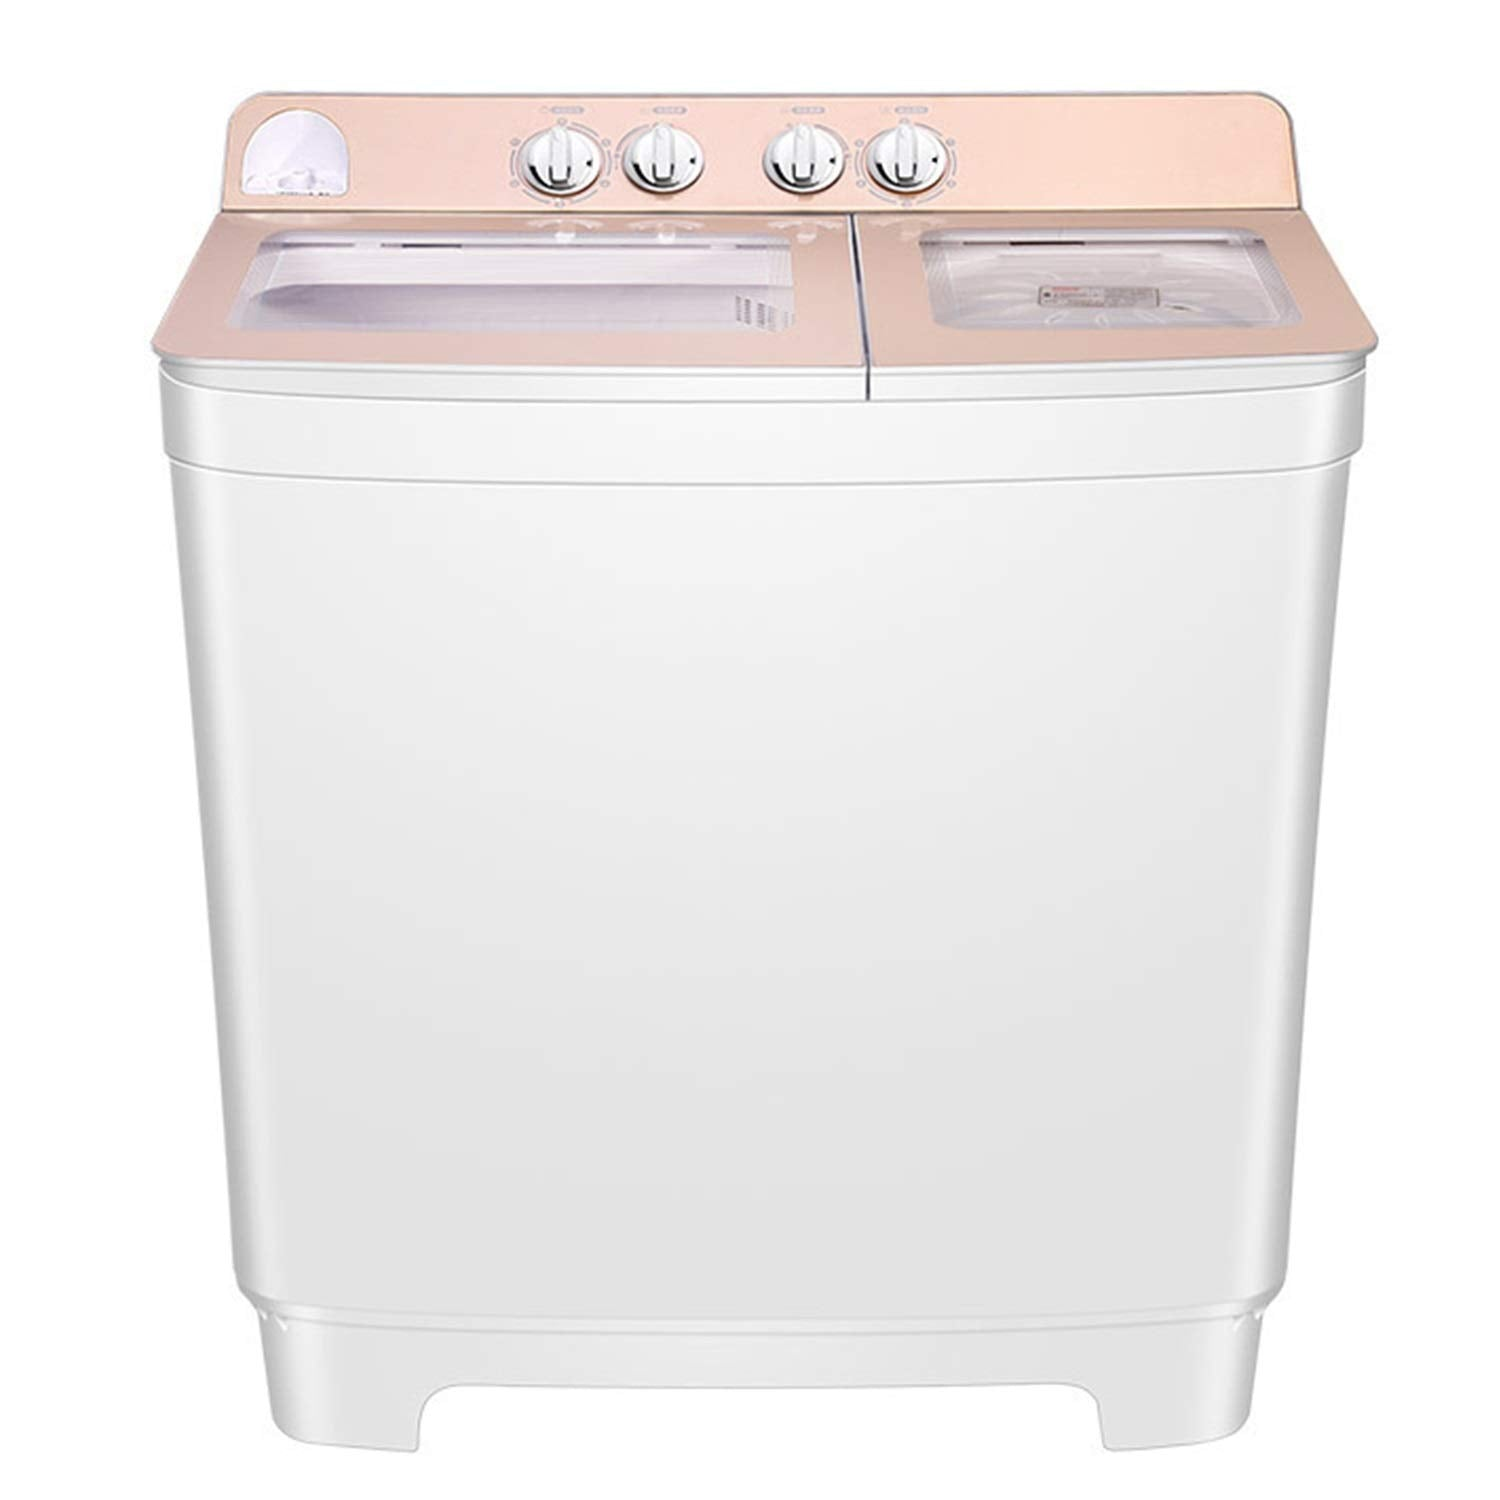 High Capacity Large Household Appliances, Large-capacity Washing Machines, Children's Adult Clothes Dryers, Dryers, Dormitories, Households, Mother And Baby Dehydration Washing Machines, Multi-functio